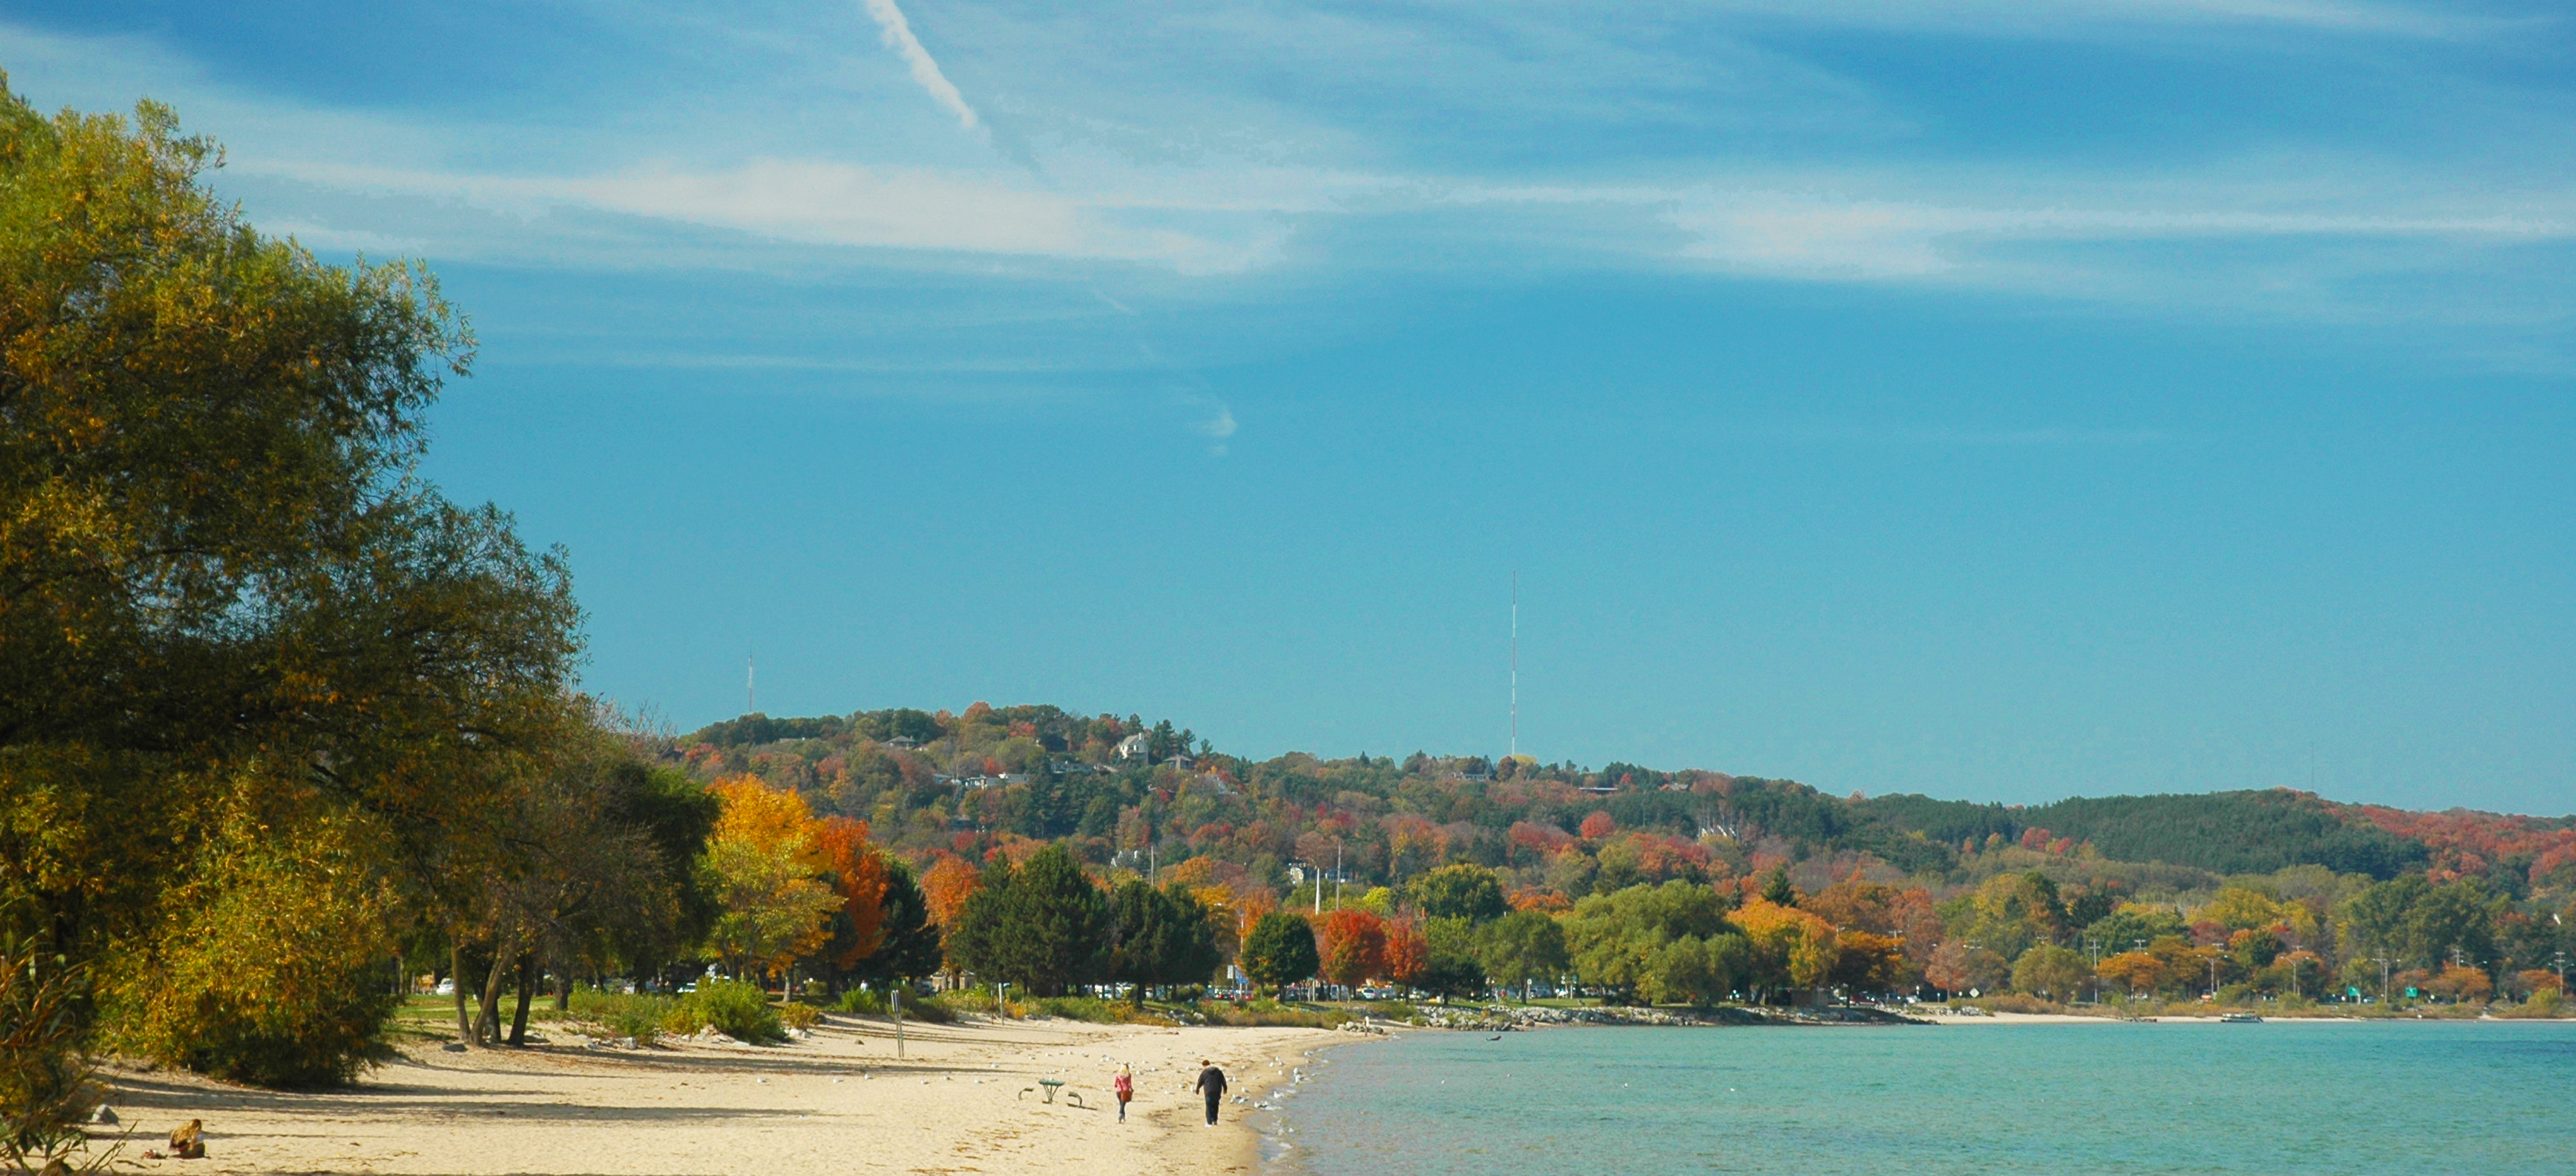 Enjoy Fall Colors and Family Events in Traverse City, MI